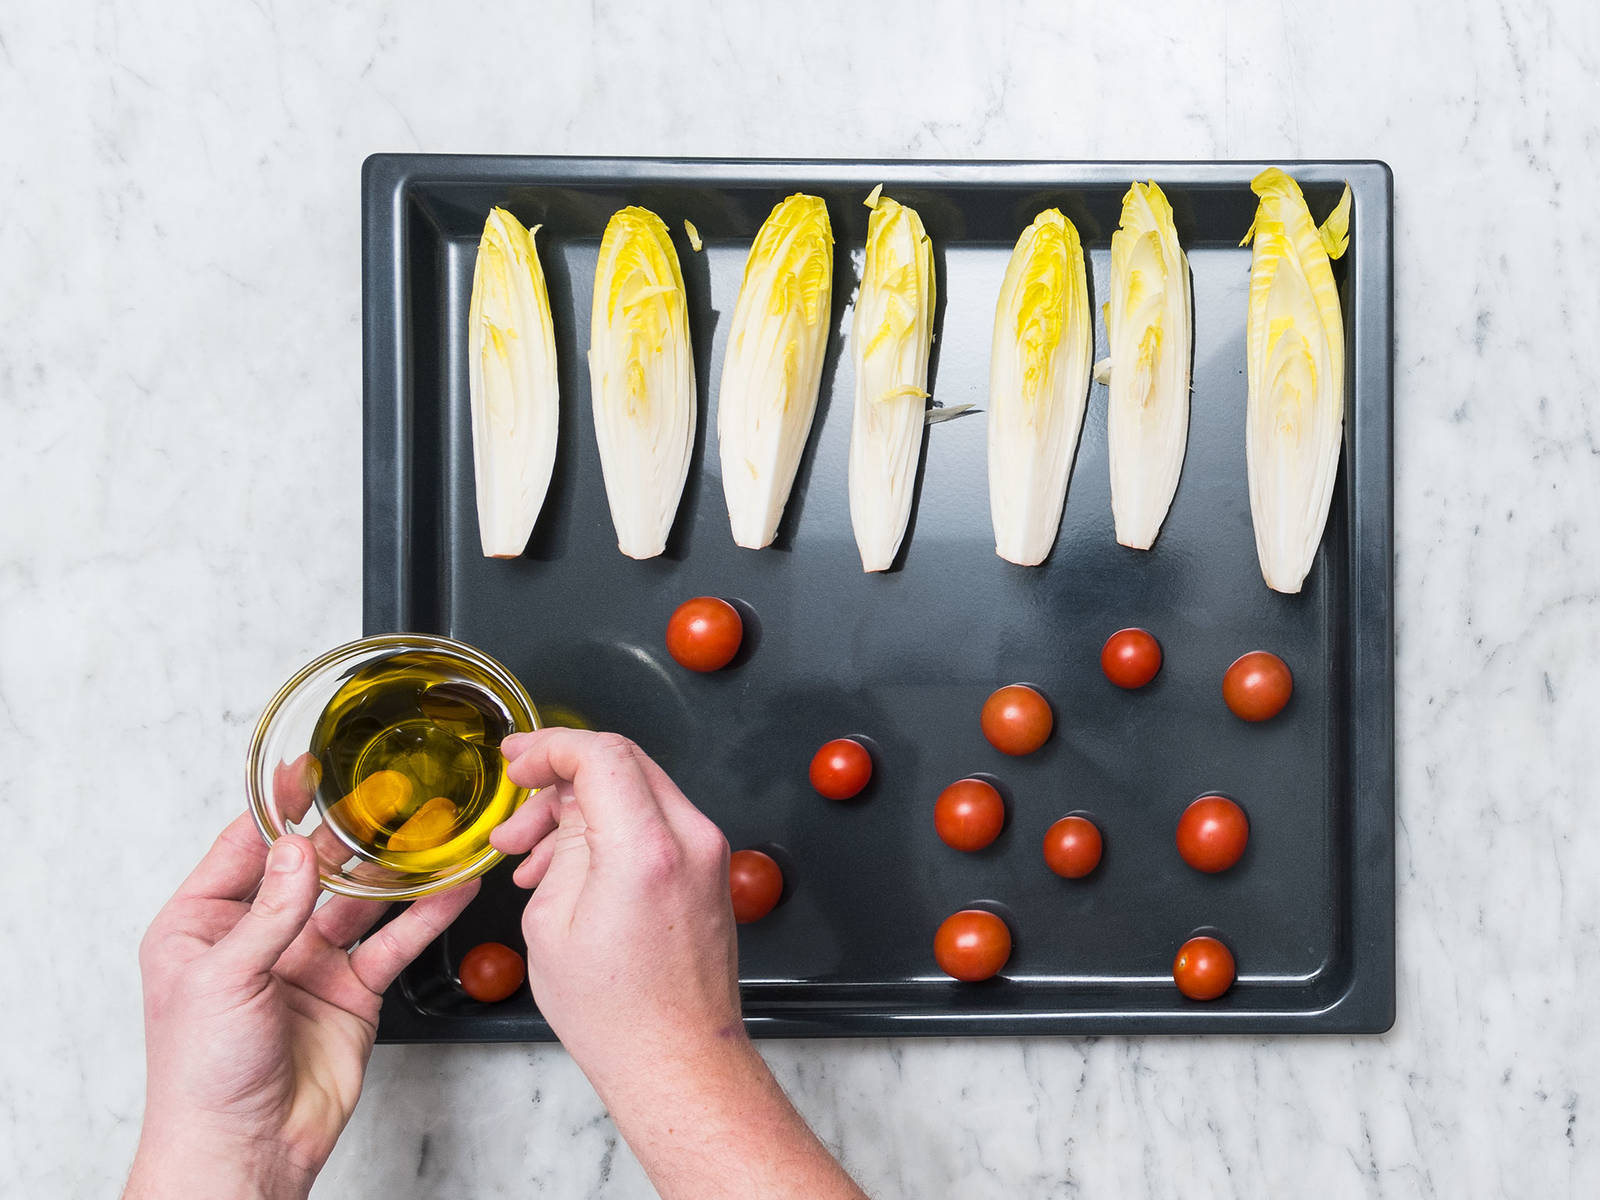 Pre-heat oven to 180°C/350°F. Wash endive and quarter. Transfer endive and tomatoes onto a baking sheet, drizzle with some olive oil, and season with salt, pepper, and sugar to taste. Roast in oven for approx. 8 – 10 min.